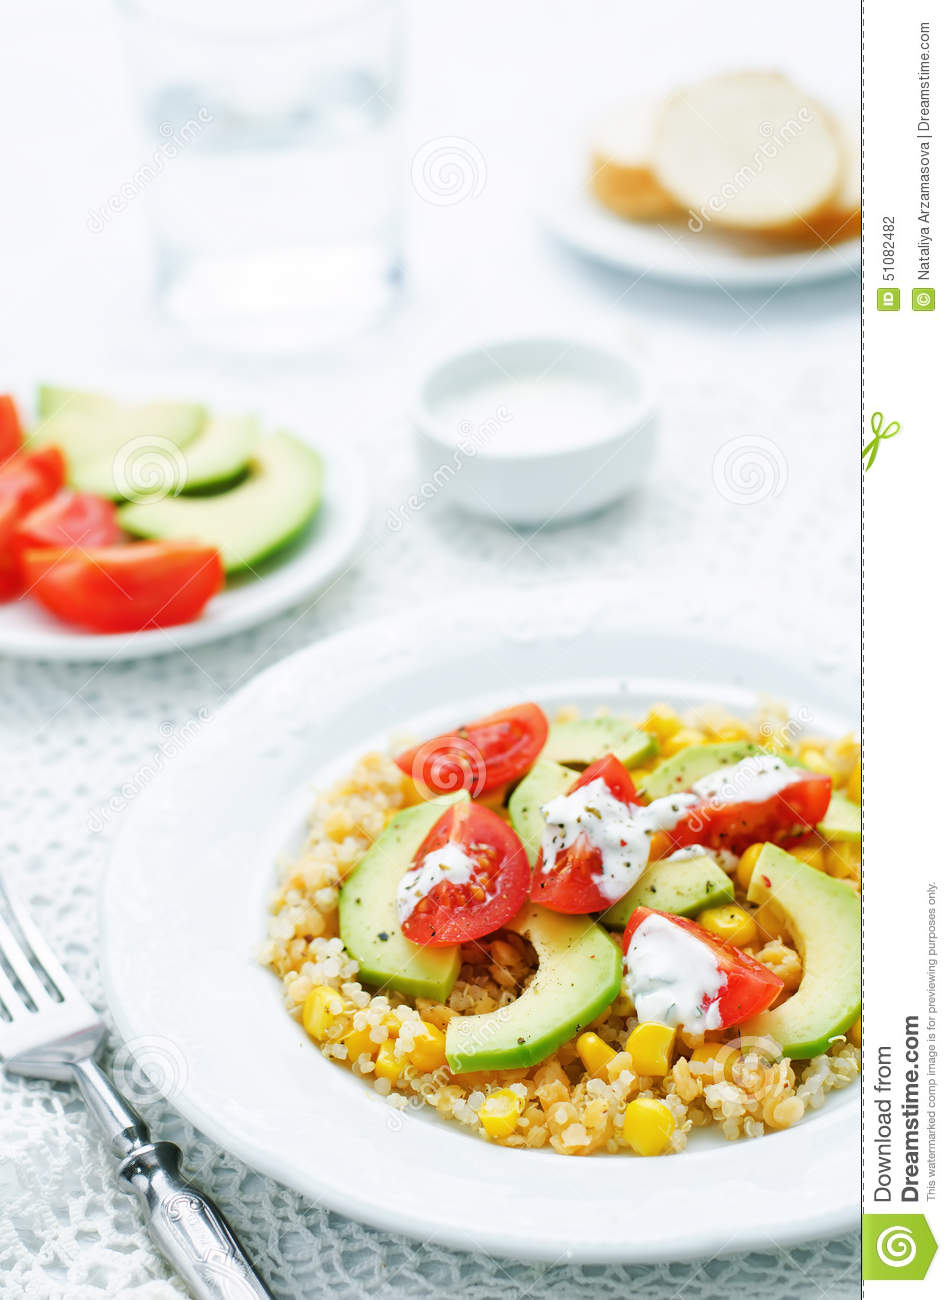 Salad with quinoa, red lentils, corn, avocado and tomato with yo